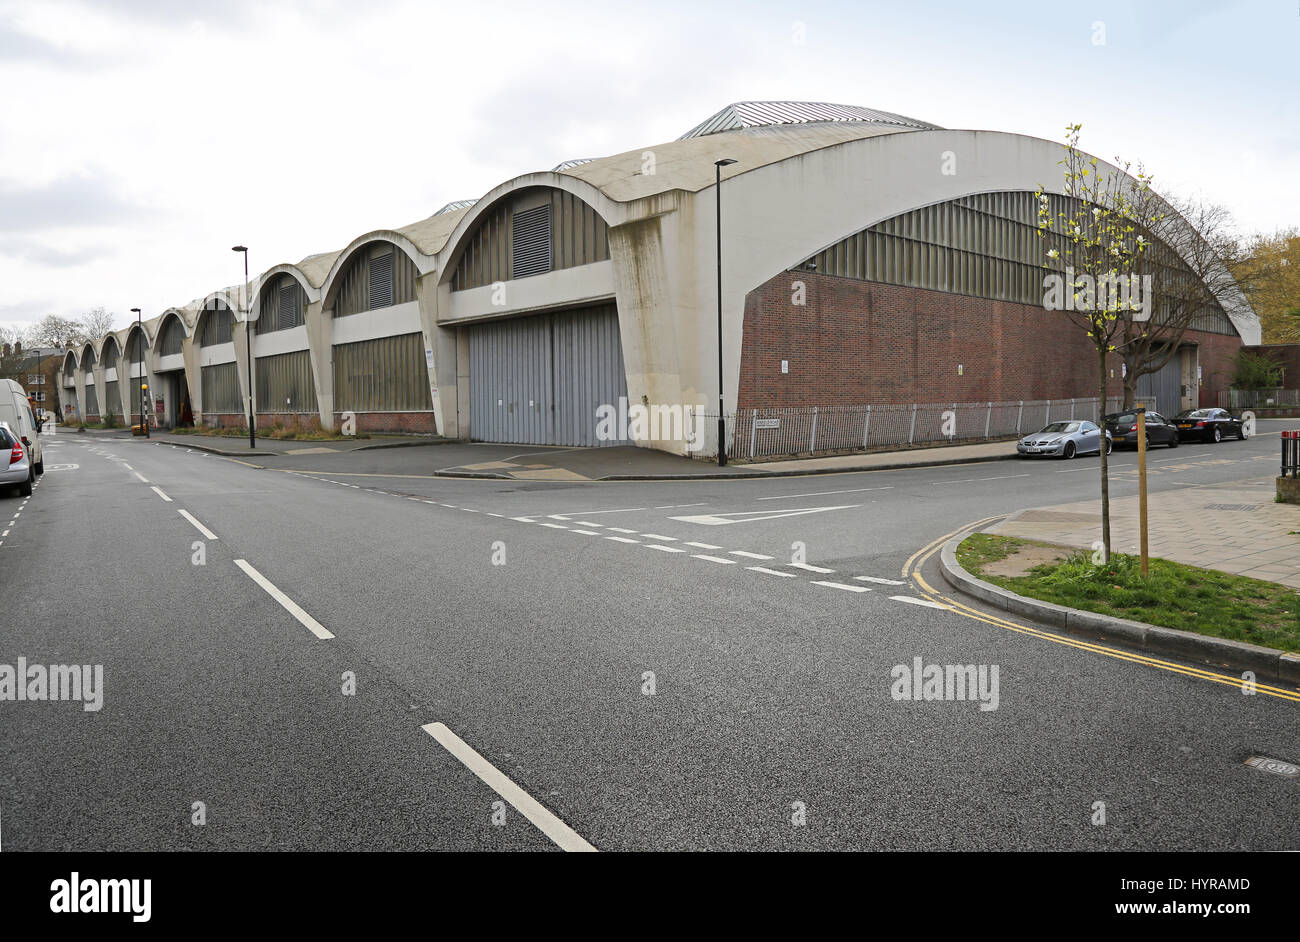 Stockwell Bus Garage, South London, UK. The famous concrete roof spans 59m and was the largest in Europe when built - Stock Image